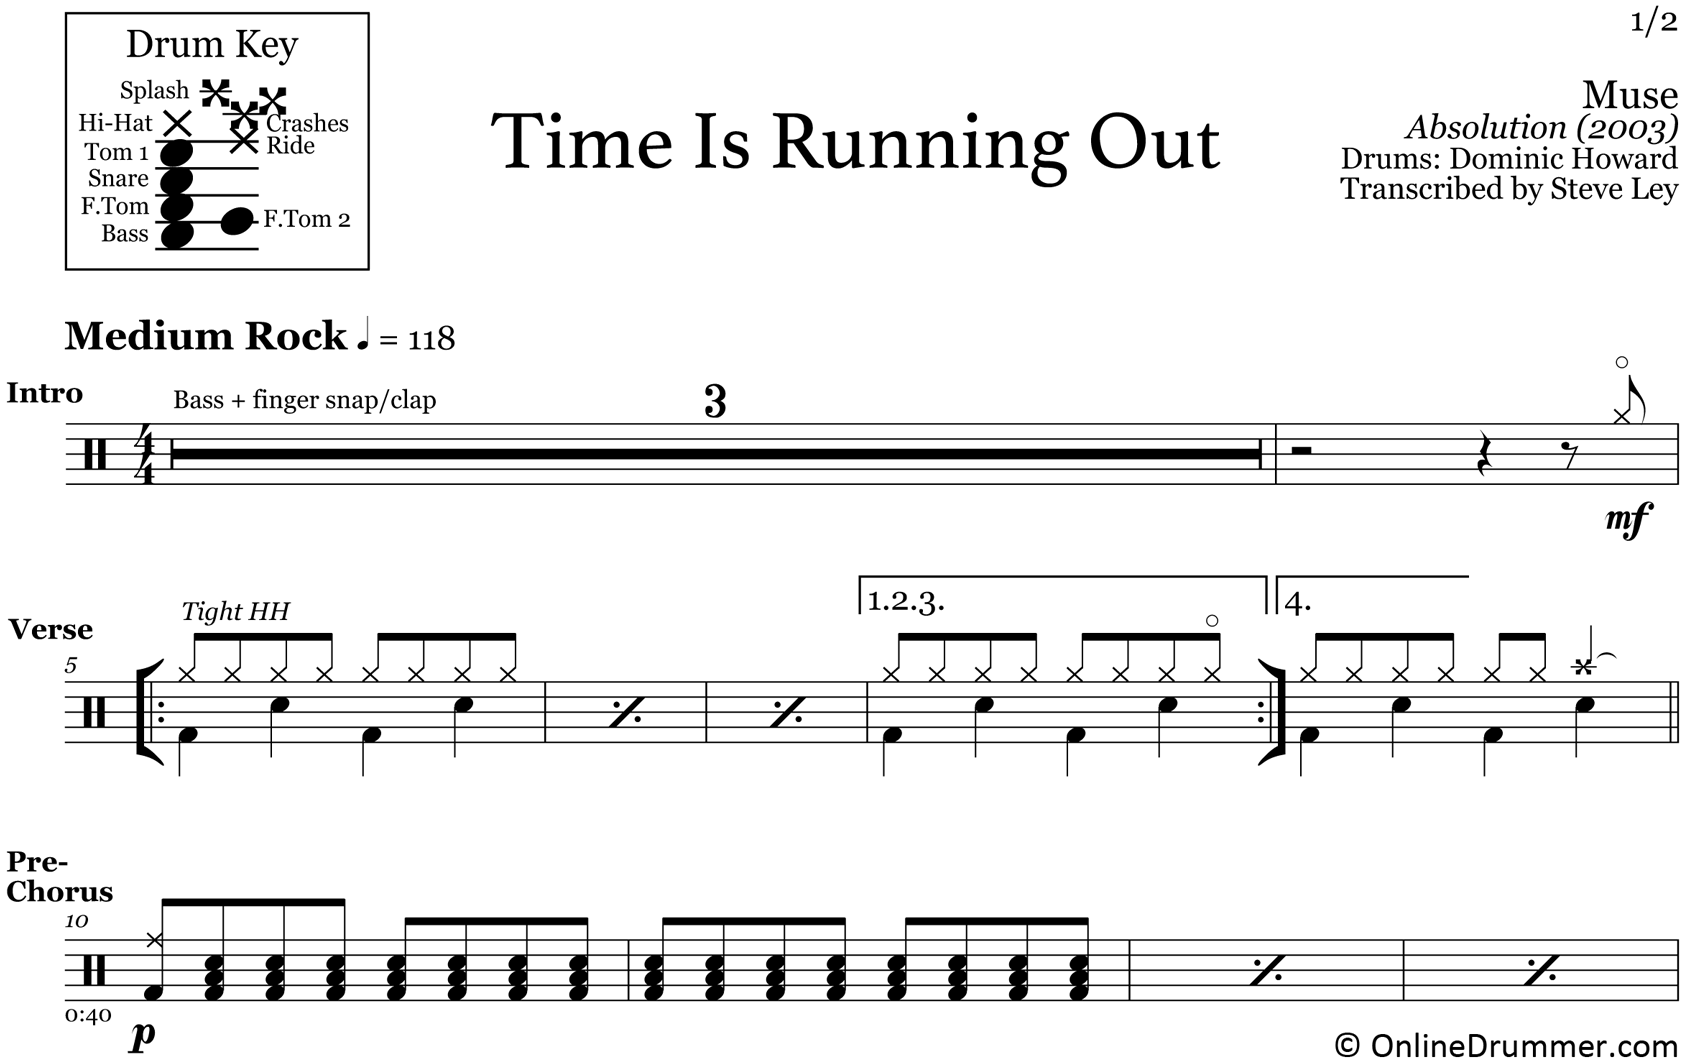 Time Is Running Out - Muse - Drum Sheet Music